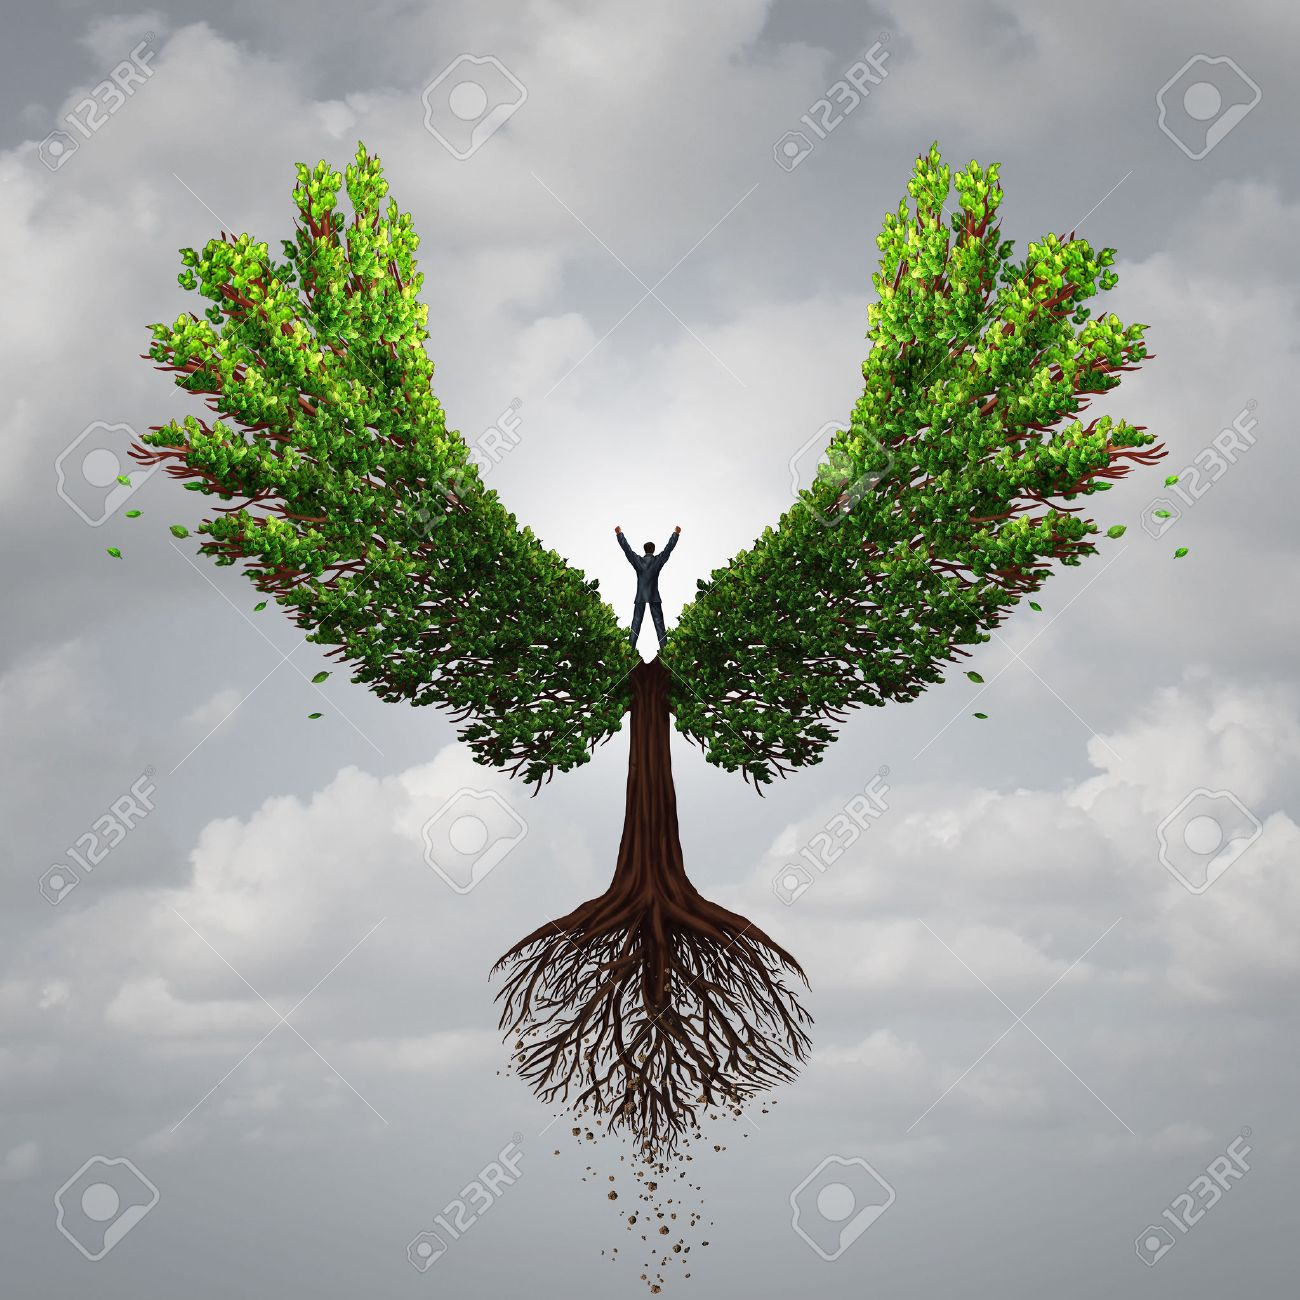 Control your life opportunity concept as a person taking charge and controlling a tree with wings flying towards a goal for success as a psychology symbol for positive thinking in a 3D illustration style. - 57750225